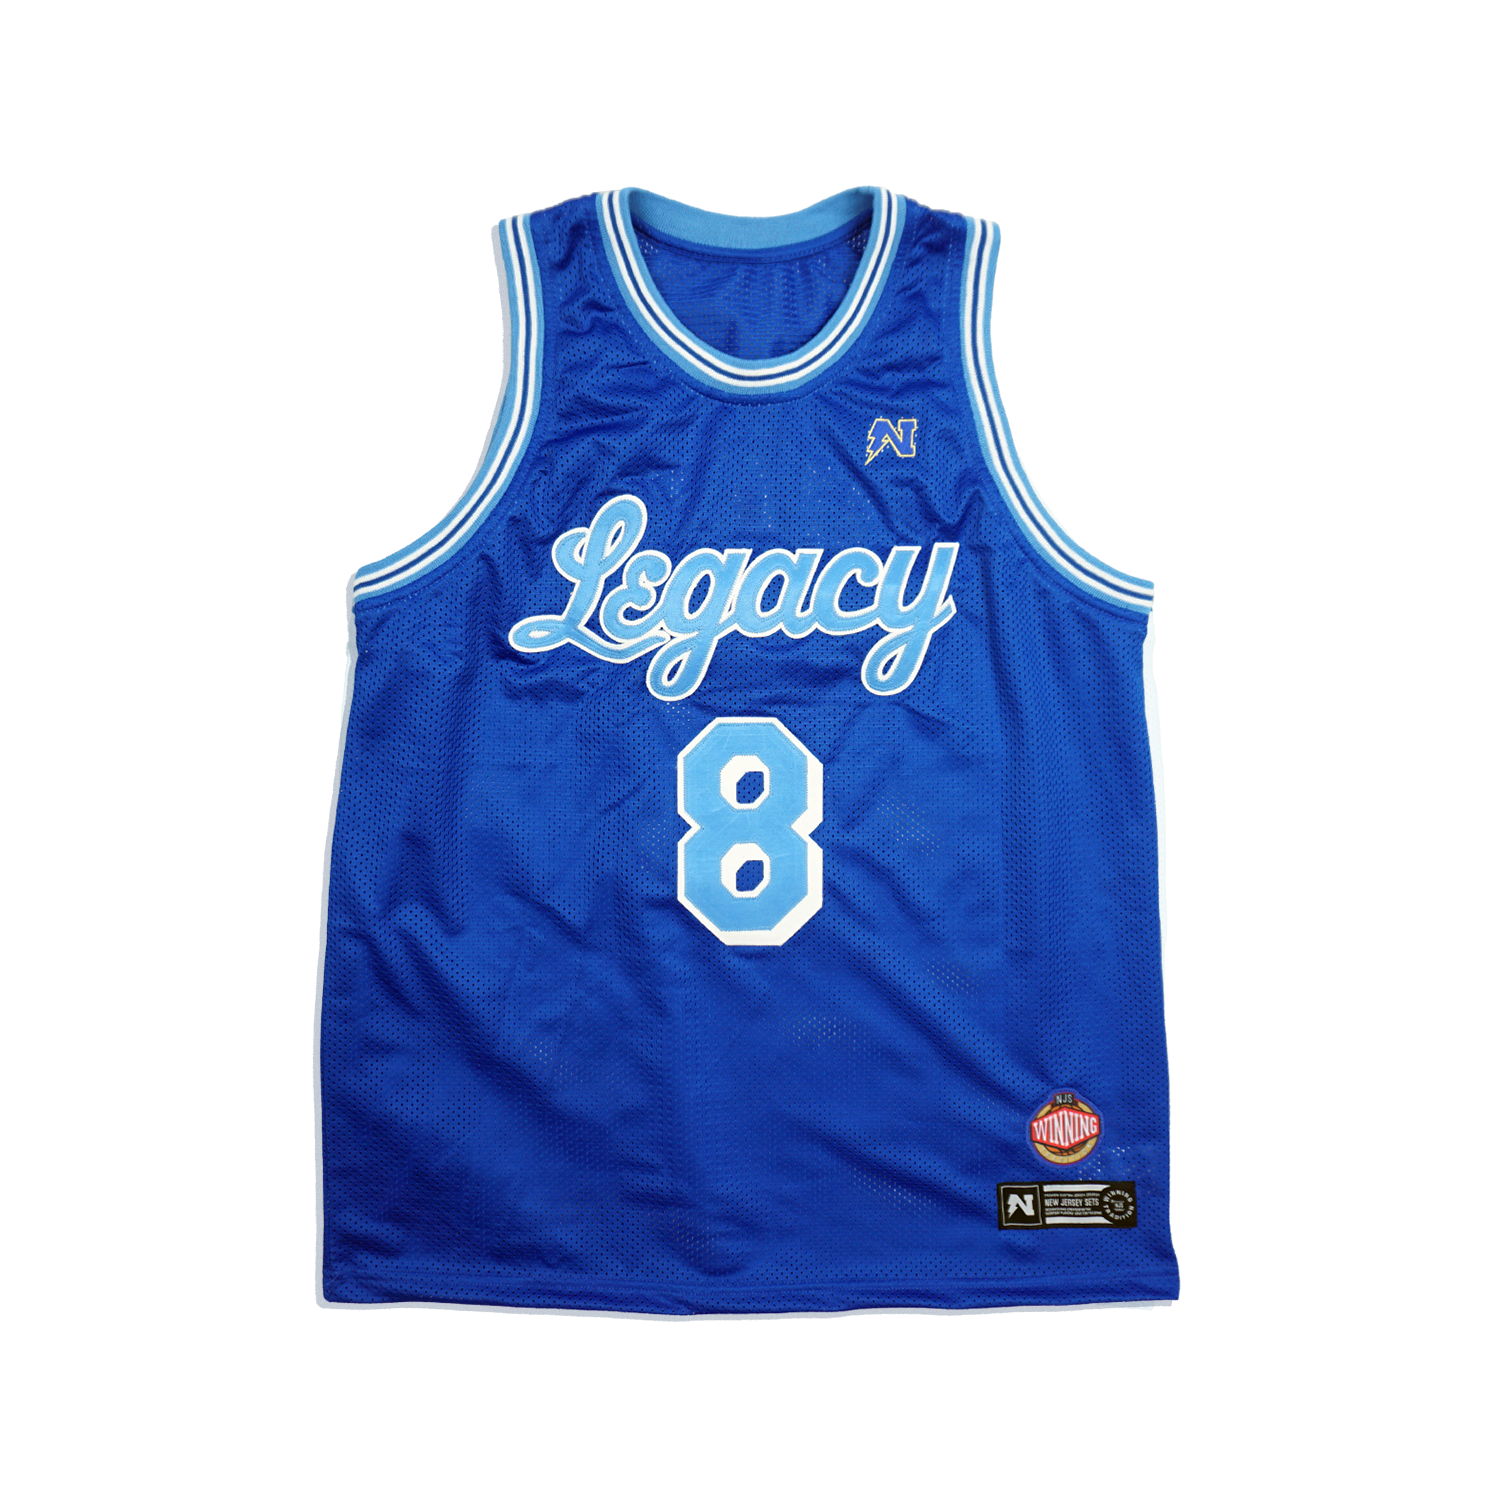 "Customizable ""Legacy"" Basketball Jersey - Royal"